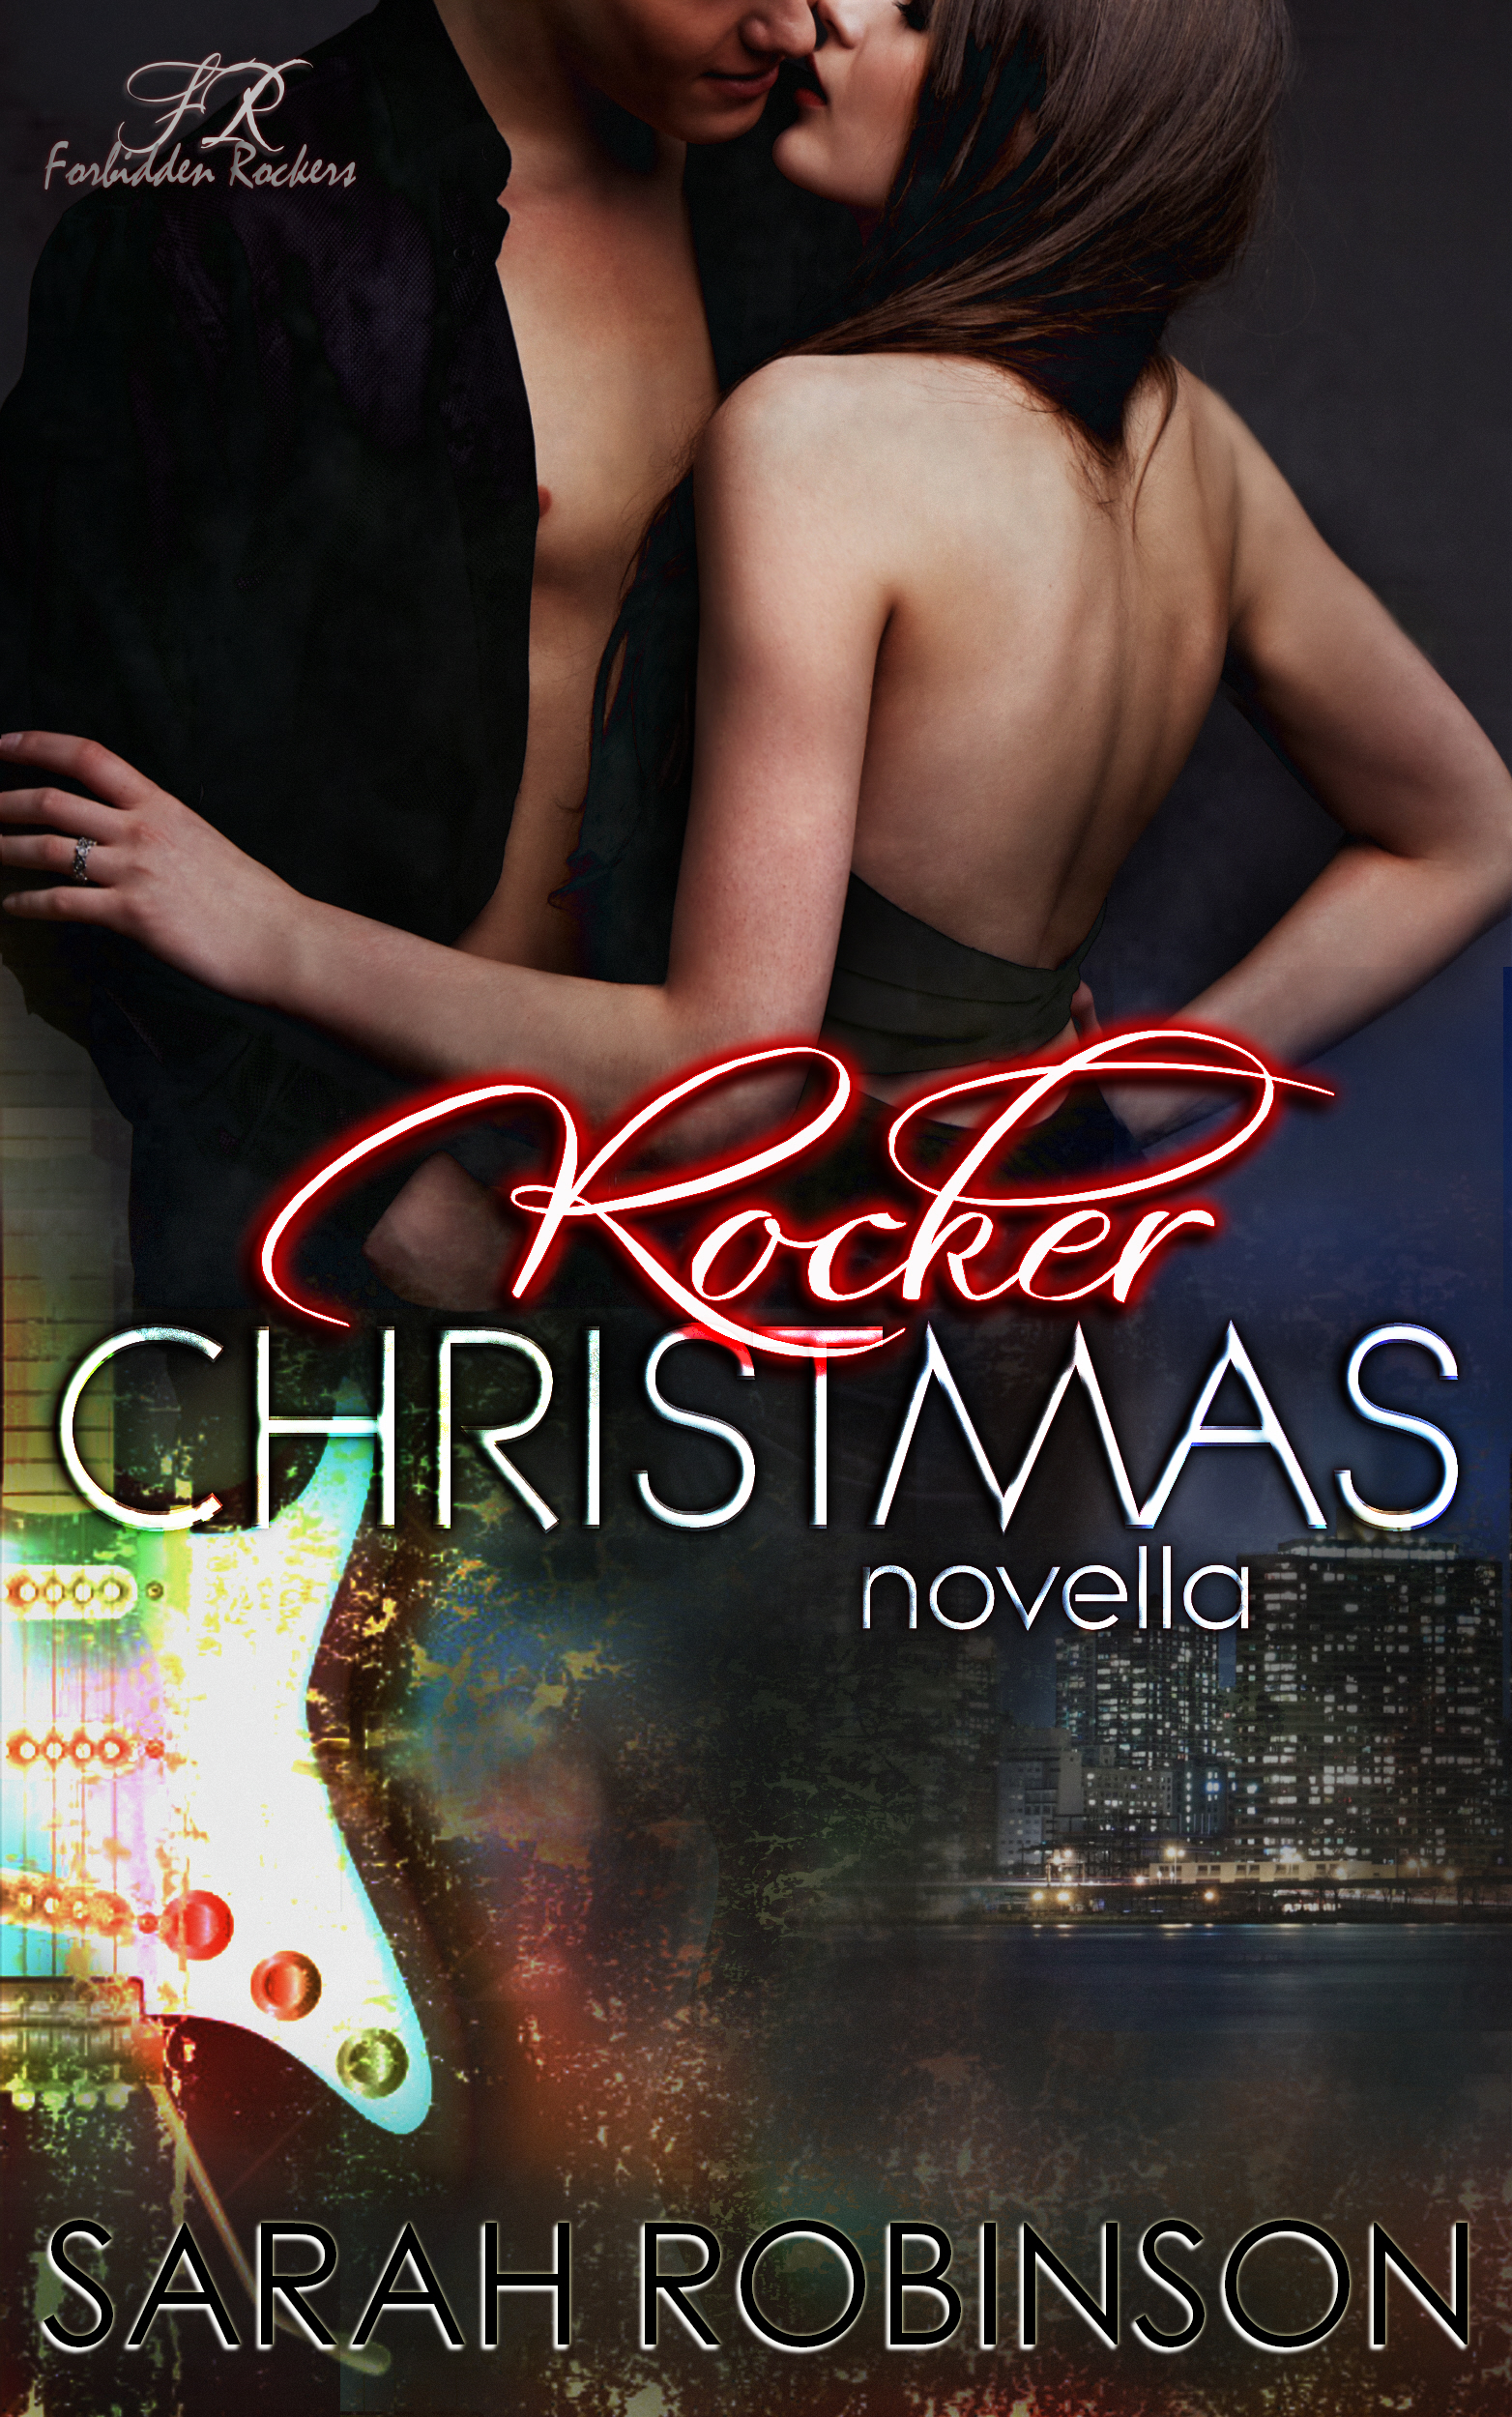 Rocker Christmas - Book 3 - Forbidden Rockers